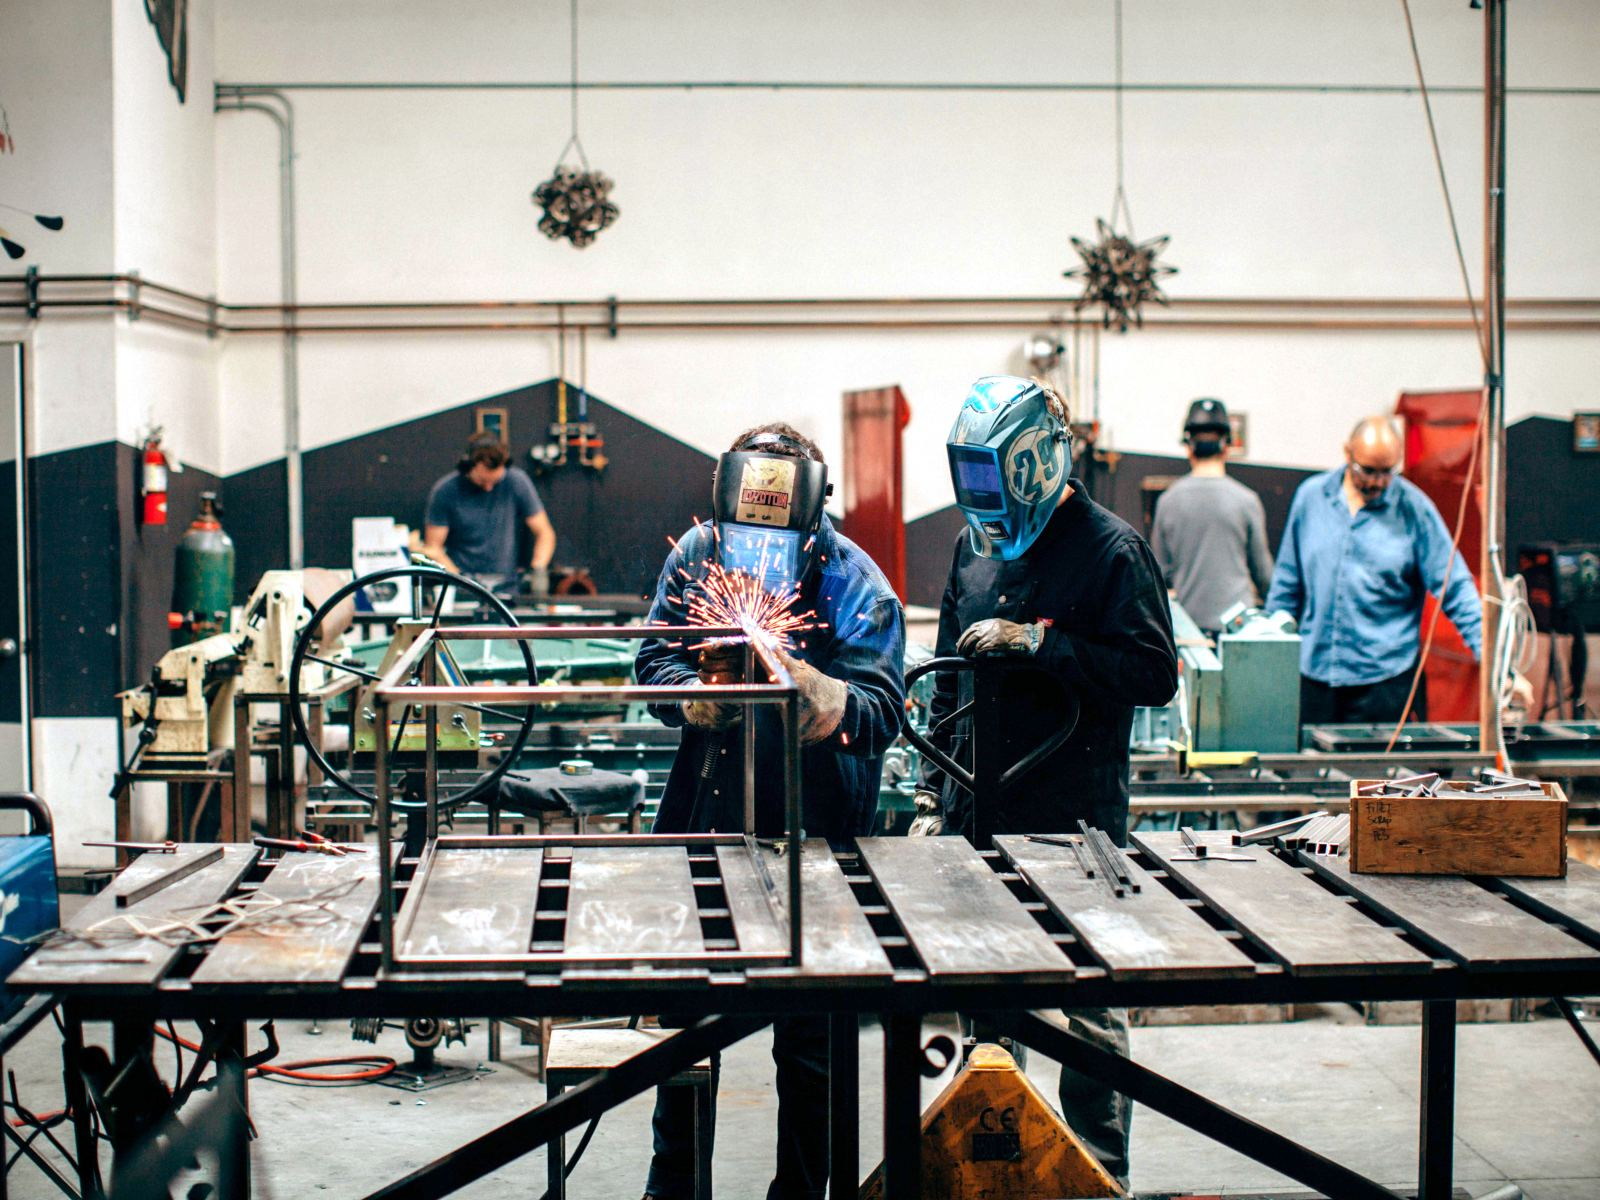 Group of people welding objects in a studio